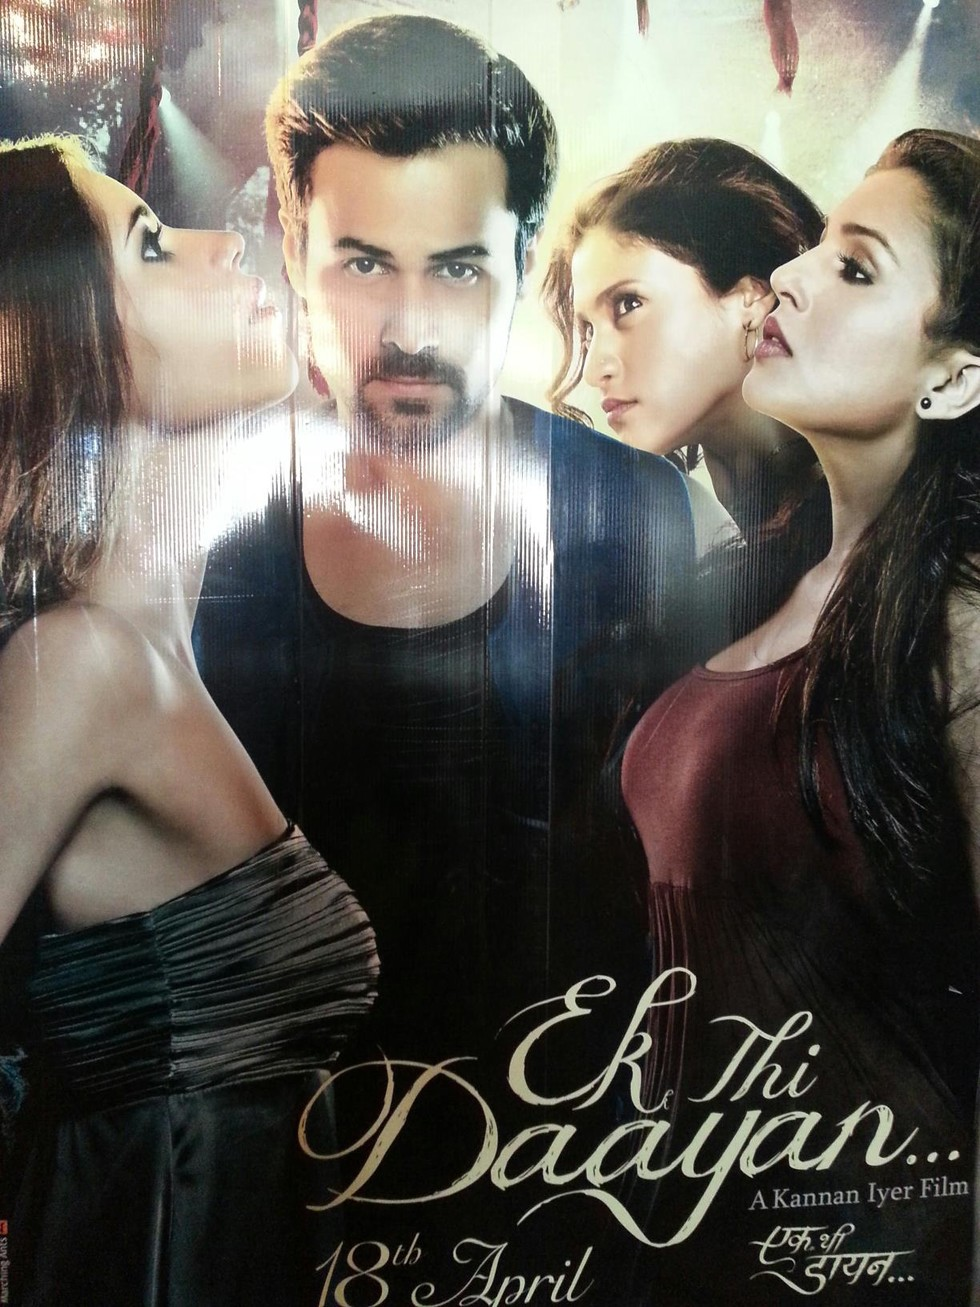 Ek Thi Daayan - Movie Poster #4 (Large)